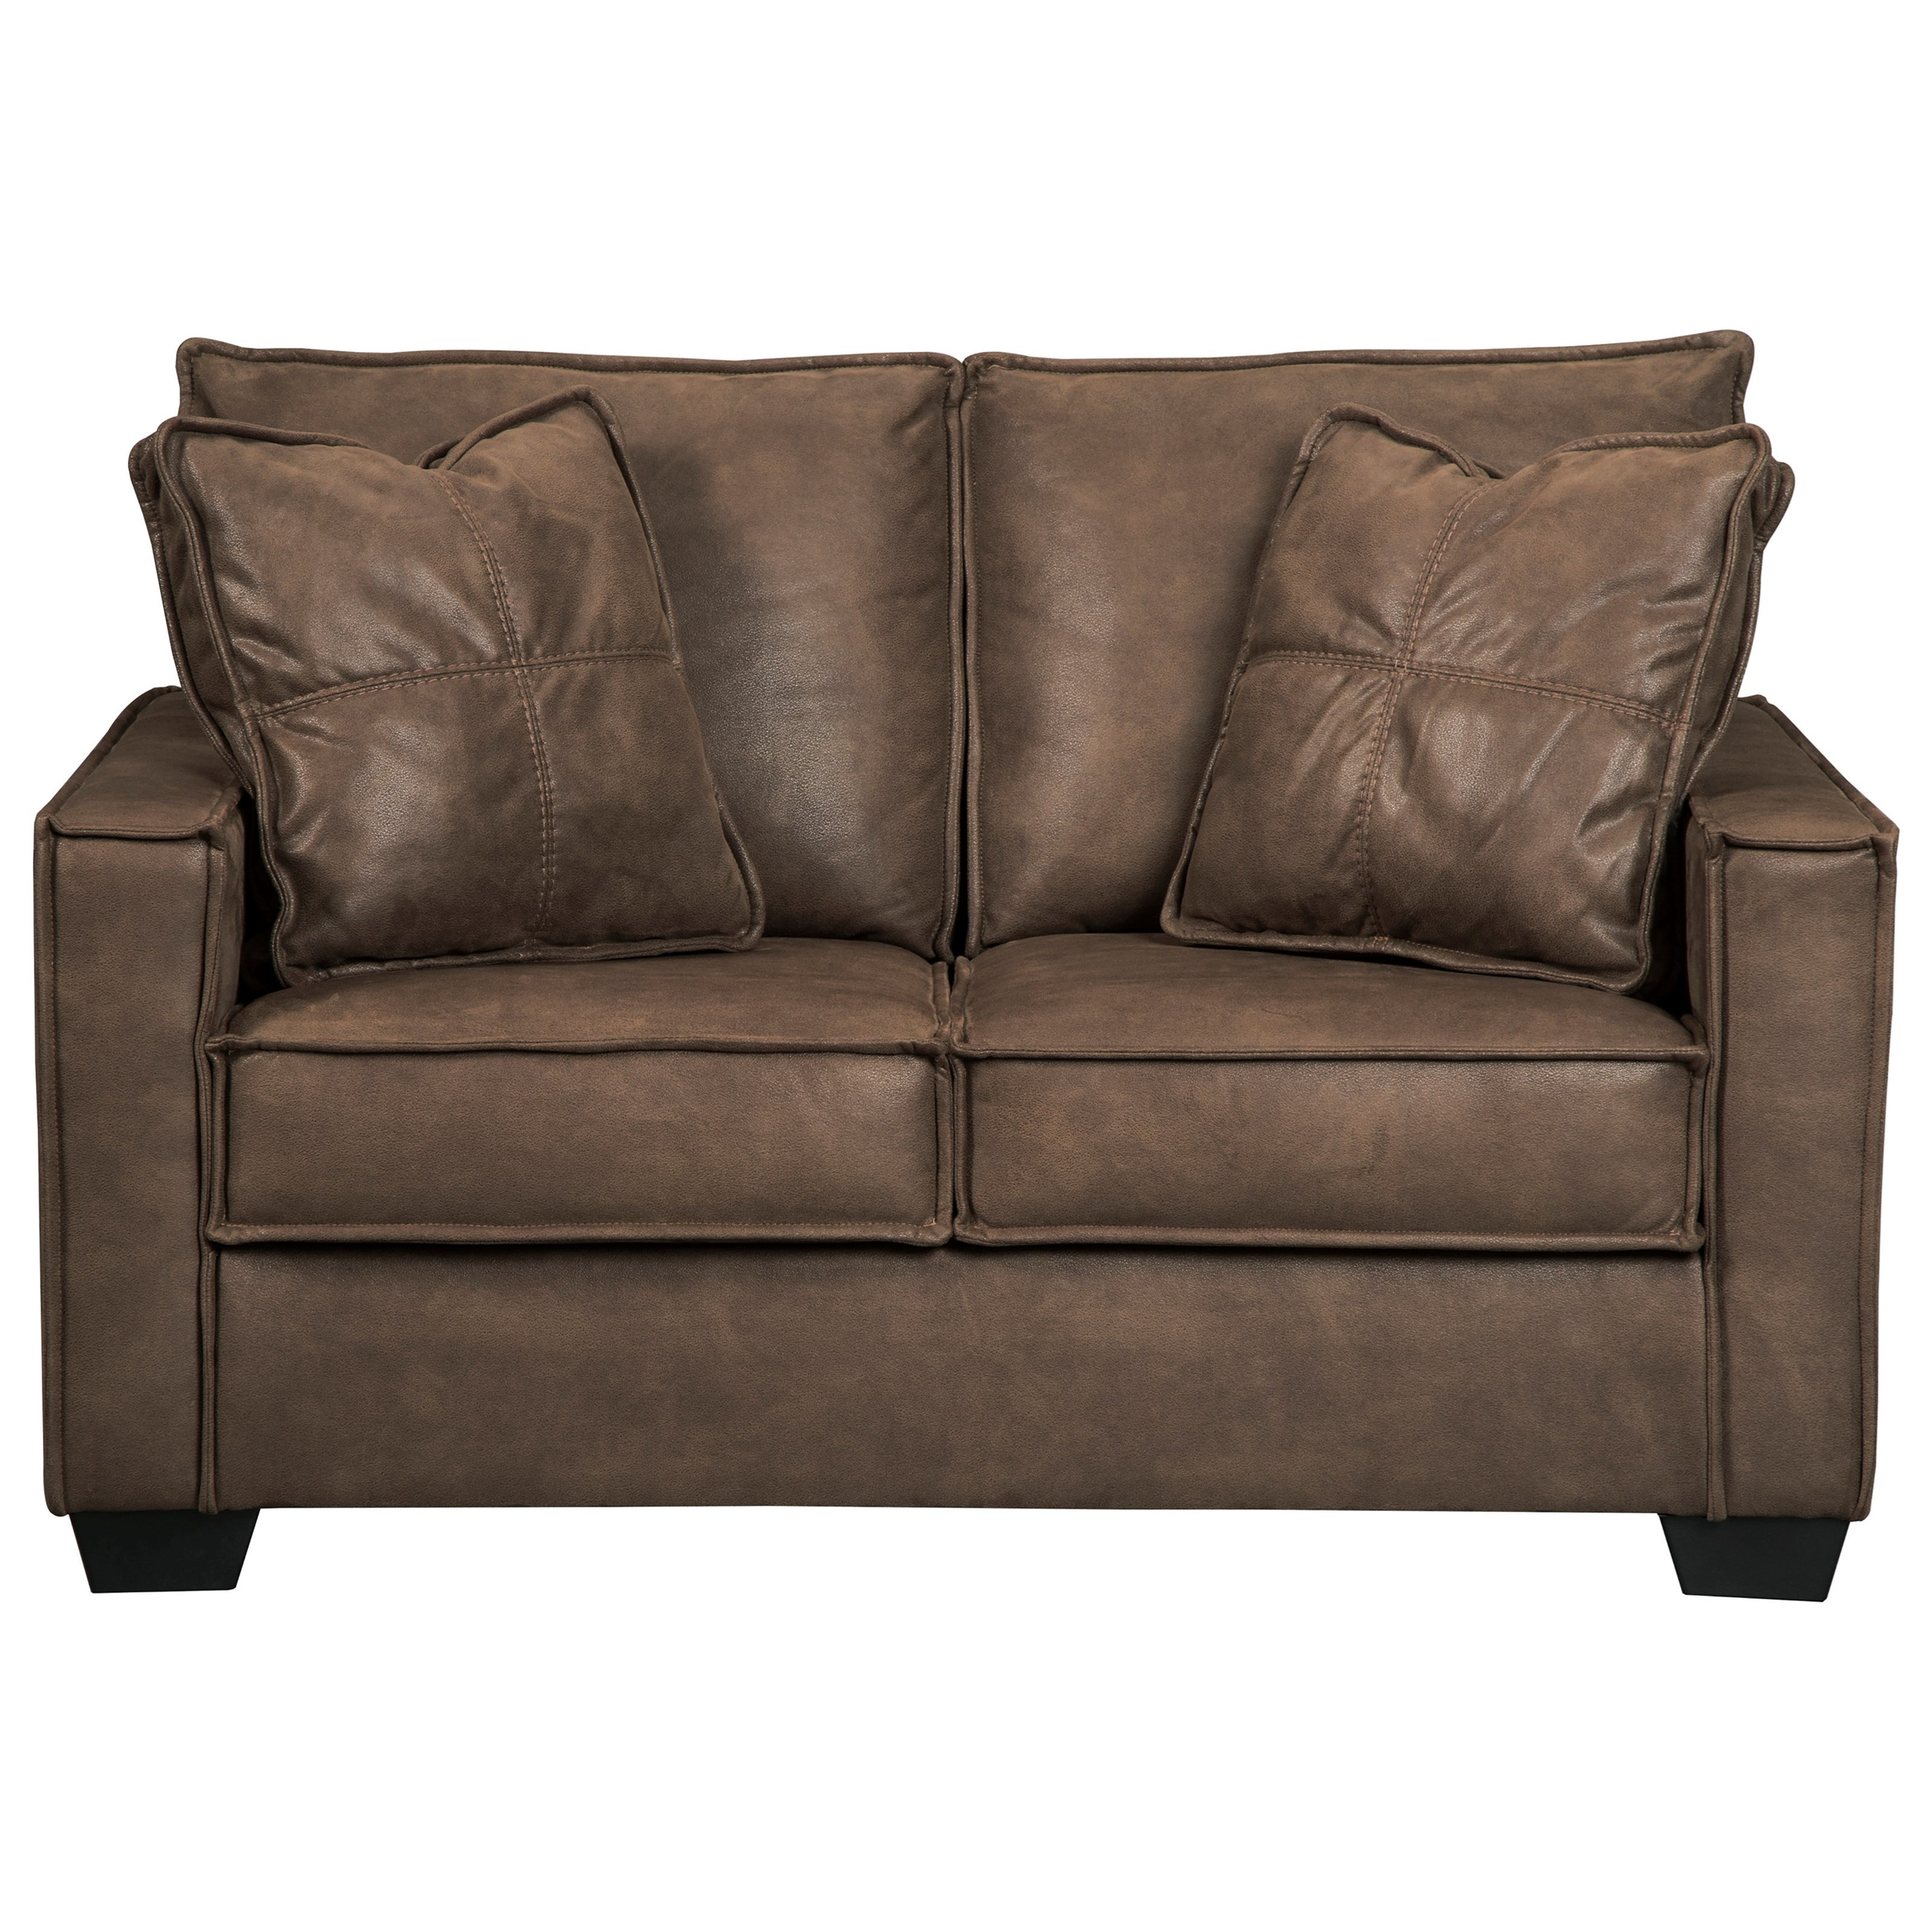 Ashley Furniture Signature Collection: Signature Design By Ashley Terrington 9290335 Faux Leather